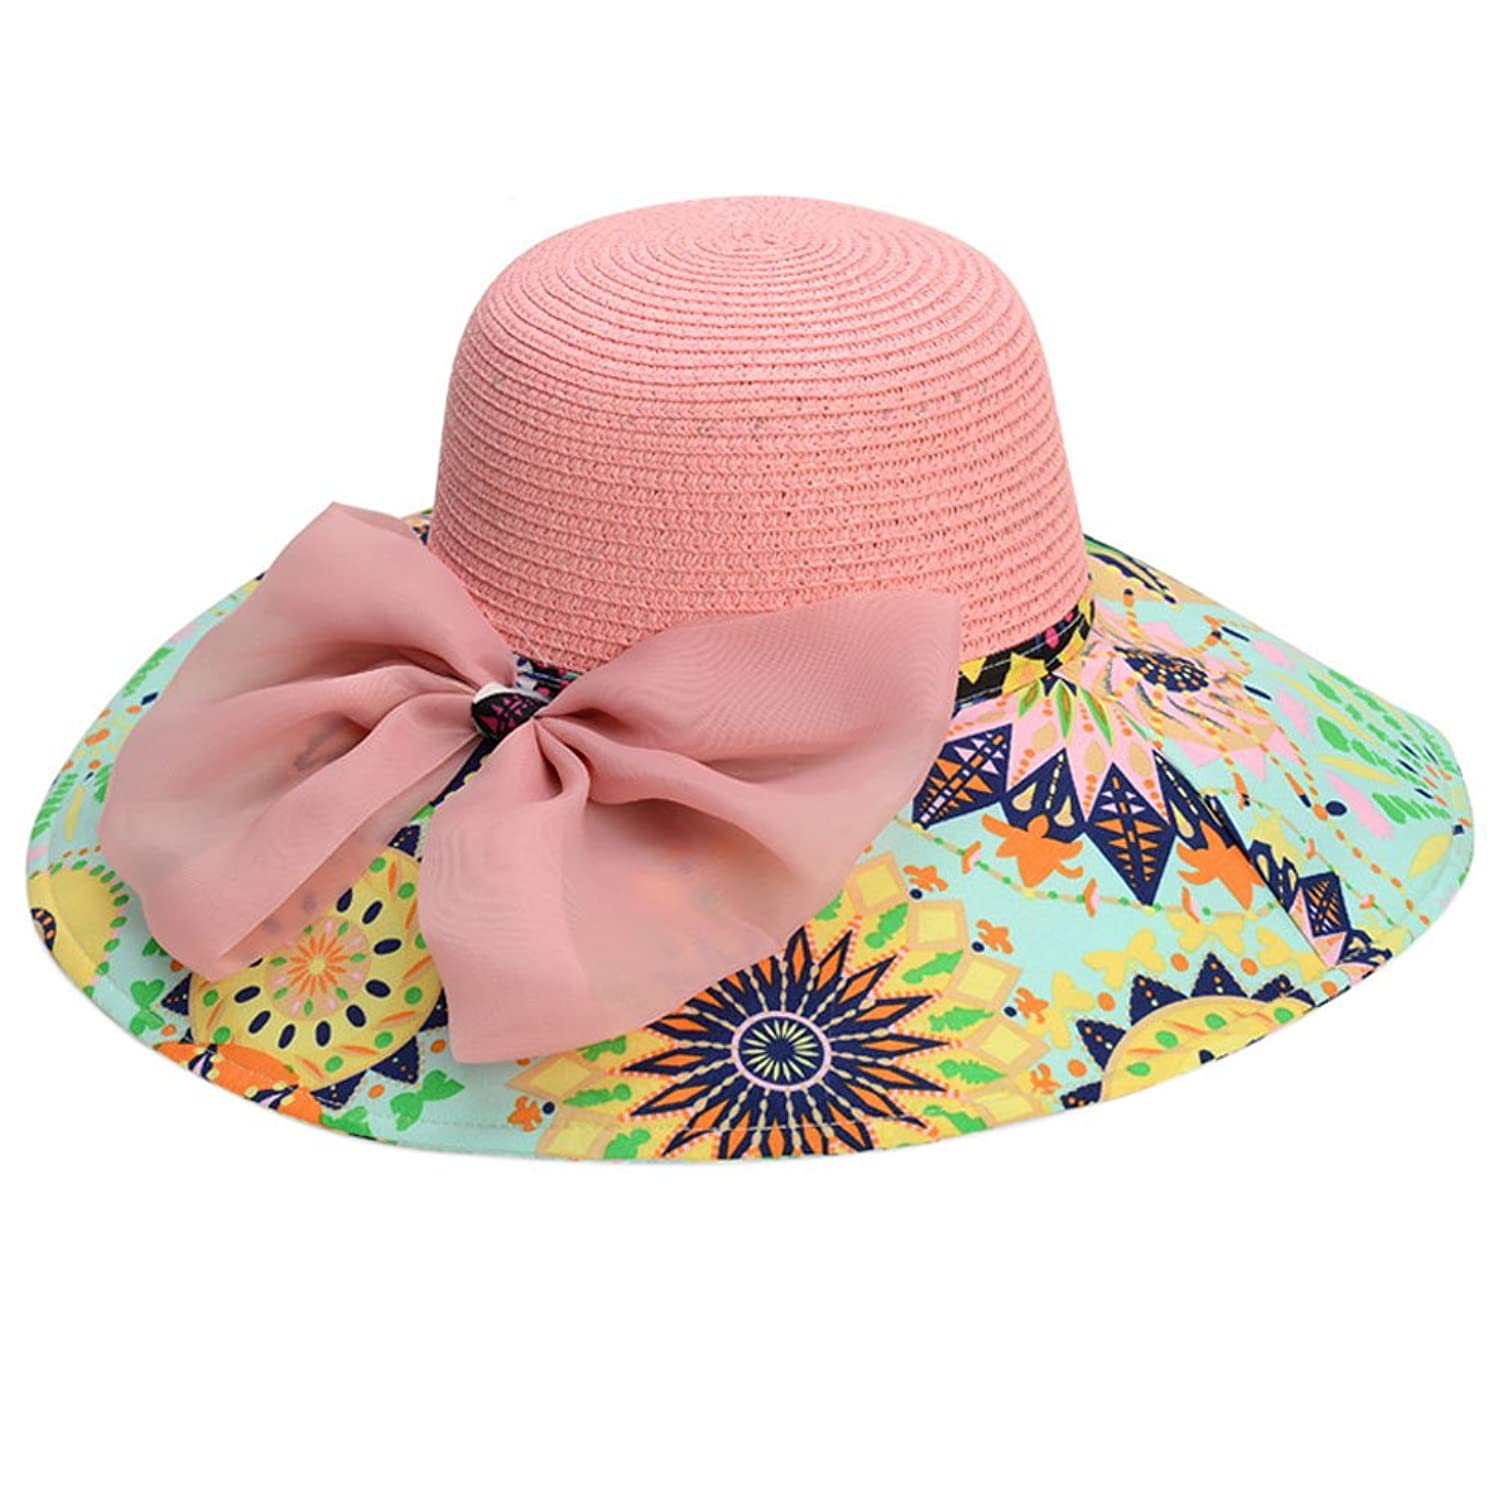 Mlotus Fashion Ladies Bowknot Summer Beach Sun Hat Visor Foldable Big Wide Brim Straw Hats Cap